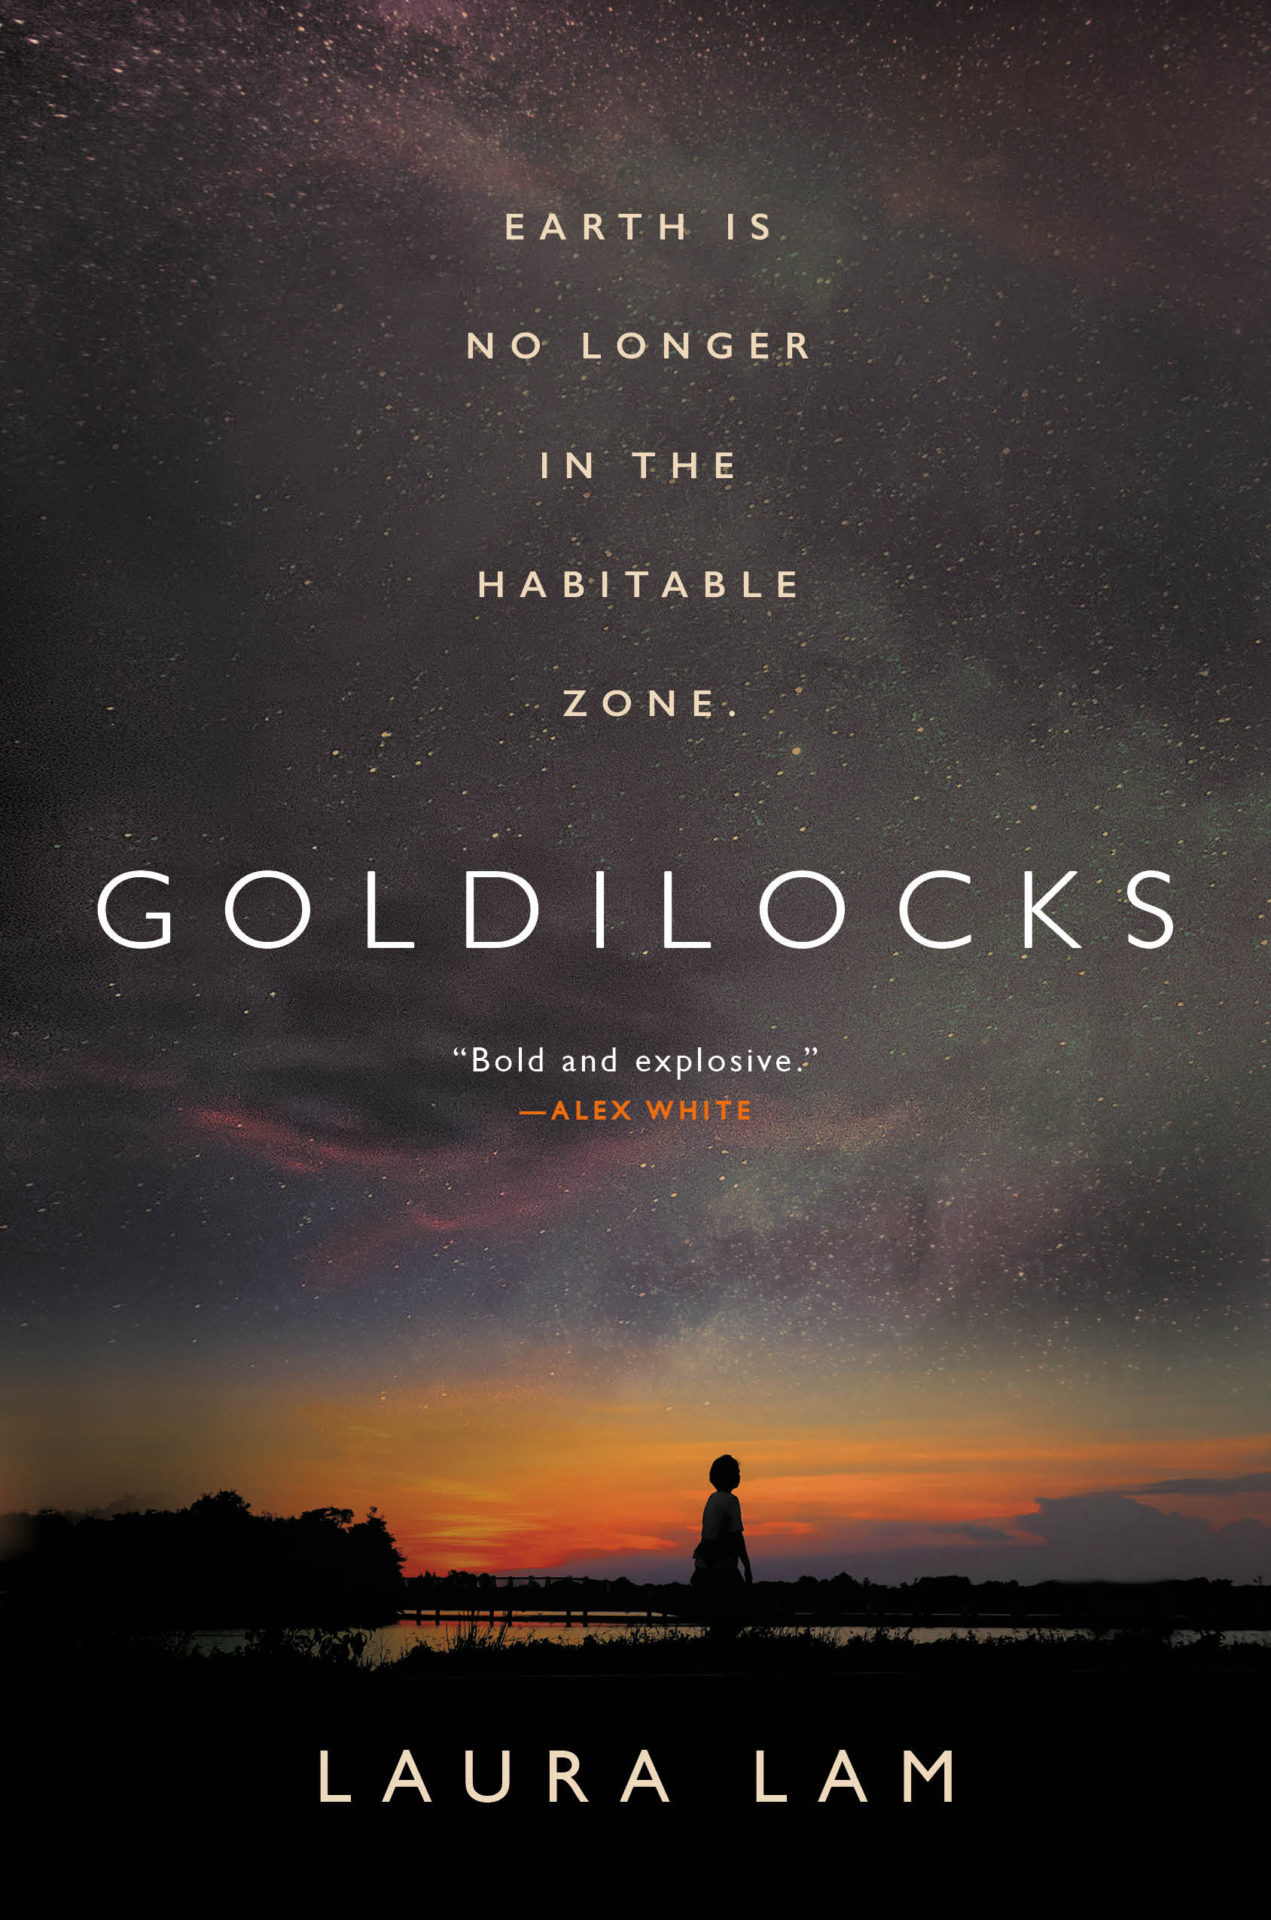 Goldilocks cover art